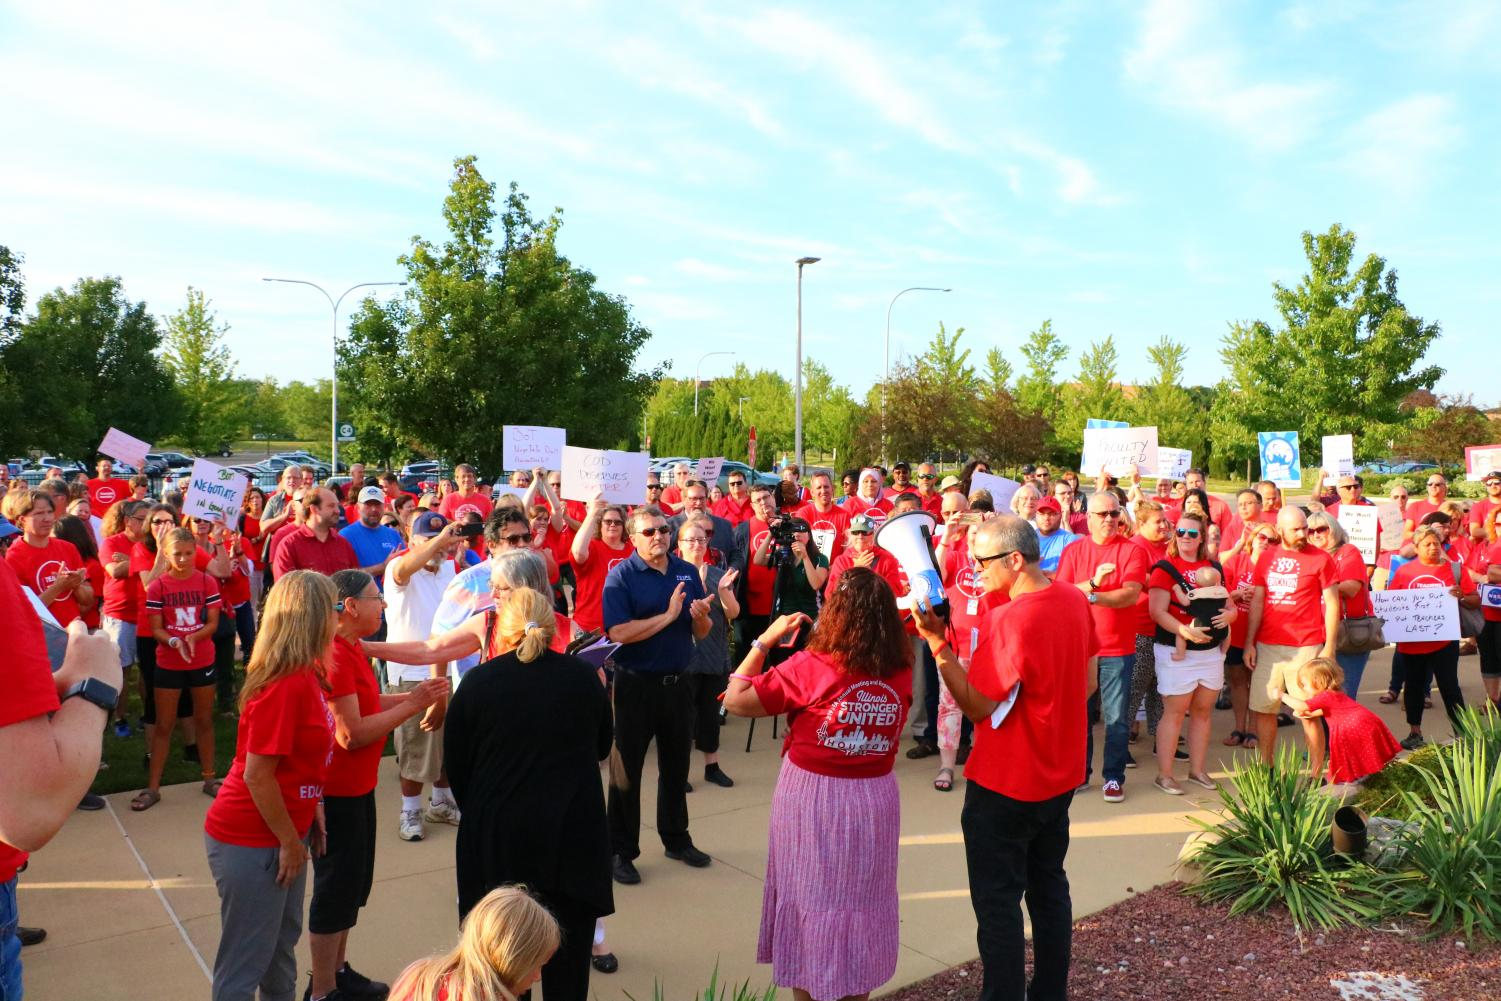 Teachers+and+community+supporters+protest+outside+of+College+of+DuPage+calling+for+more+pay+and+increased+benefits+in+the+new+full-time+Faculty+contract+%28photo+by+Alison+Pfaff%29